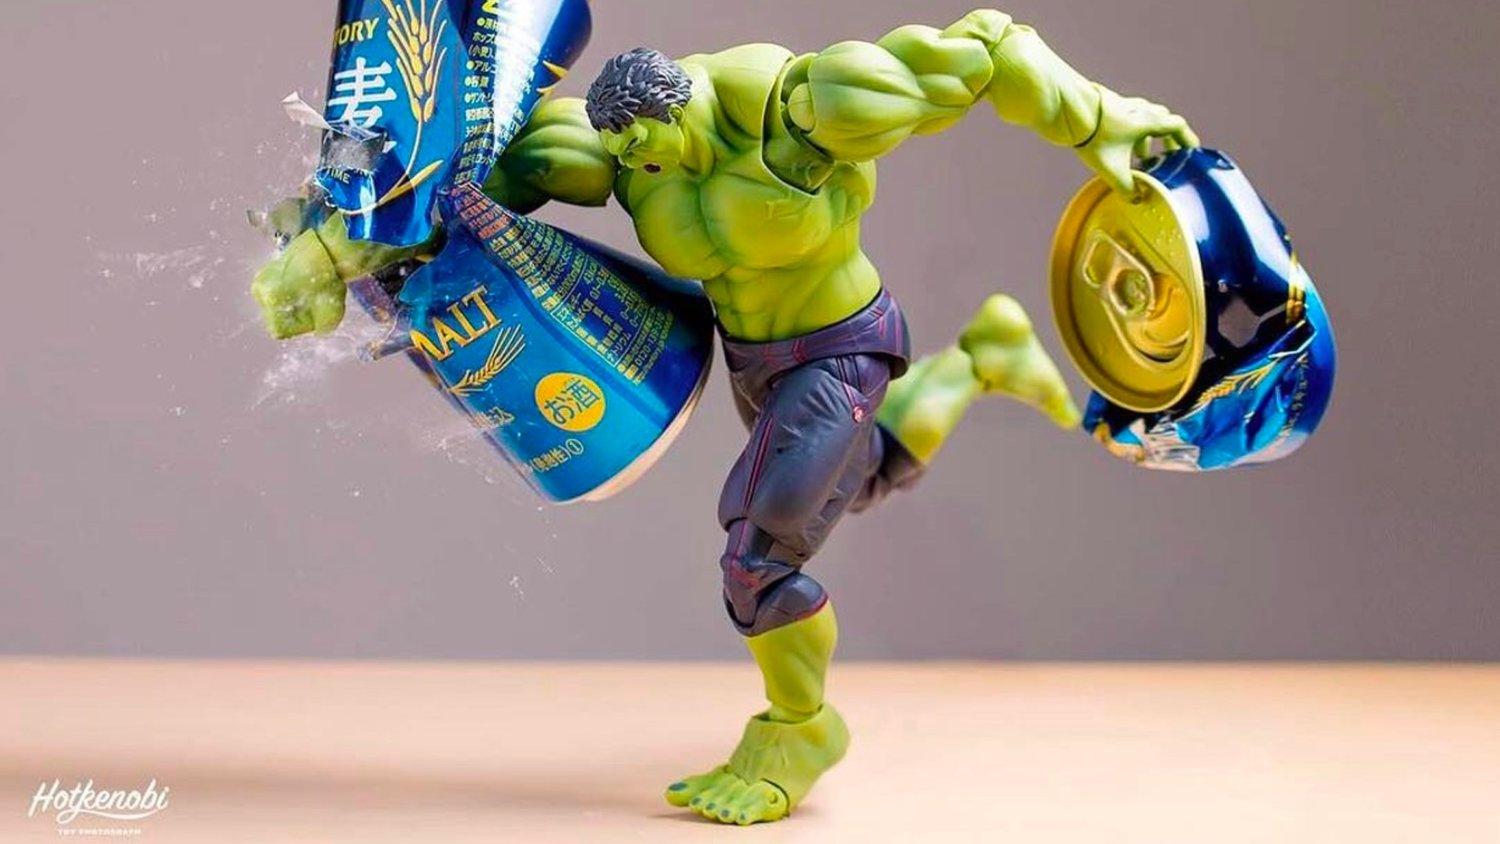 Superheroes Smash Beer Cans in Fun Action Figure Photography Series